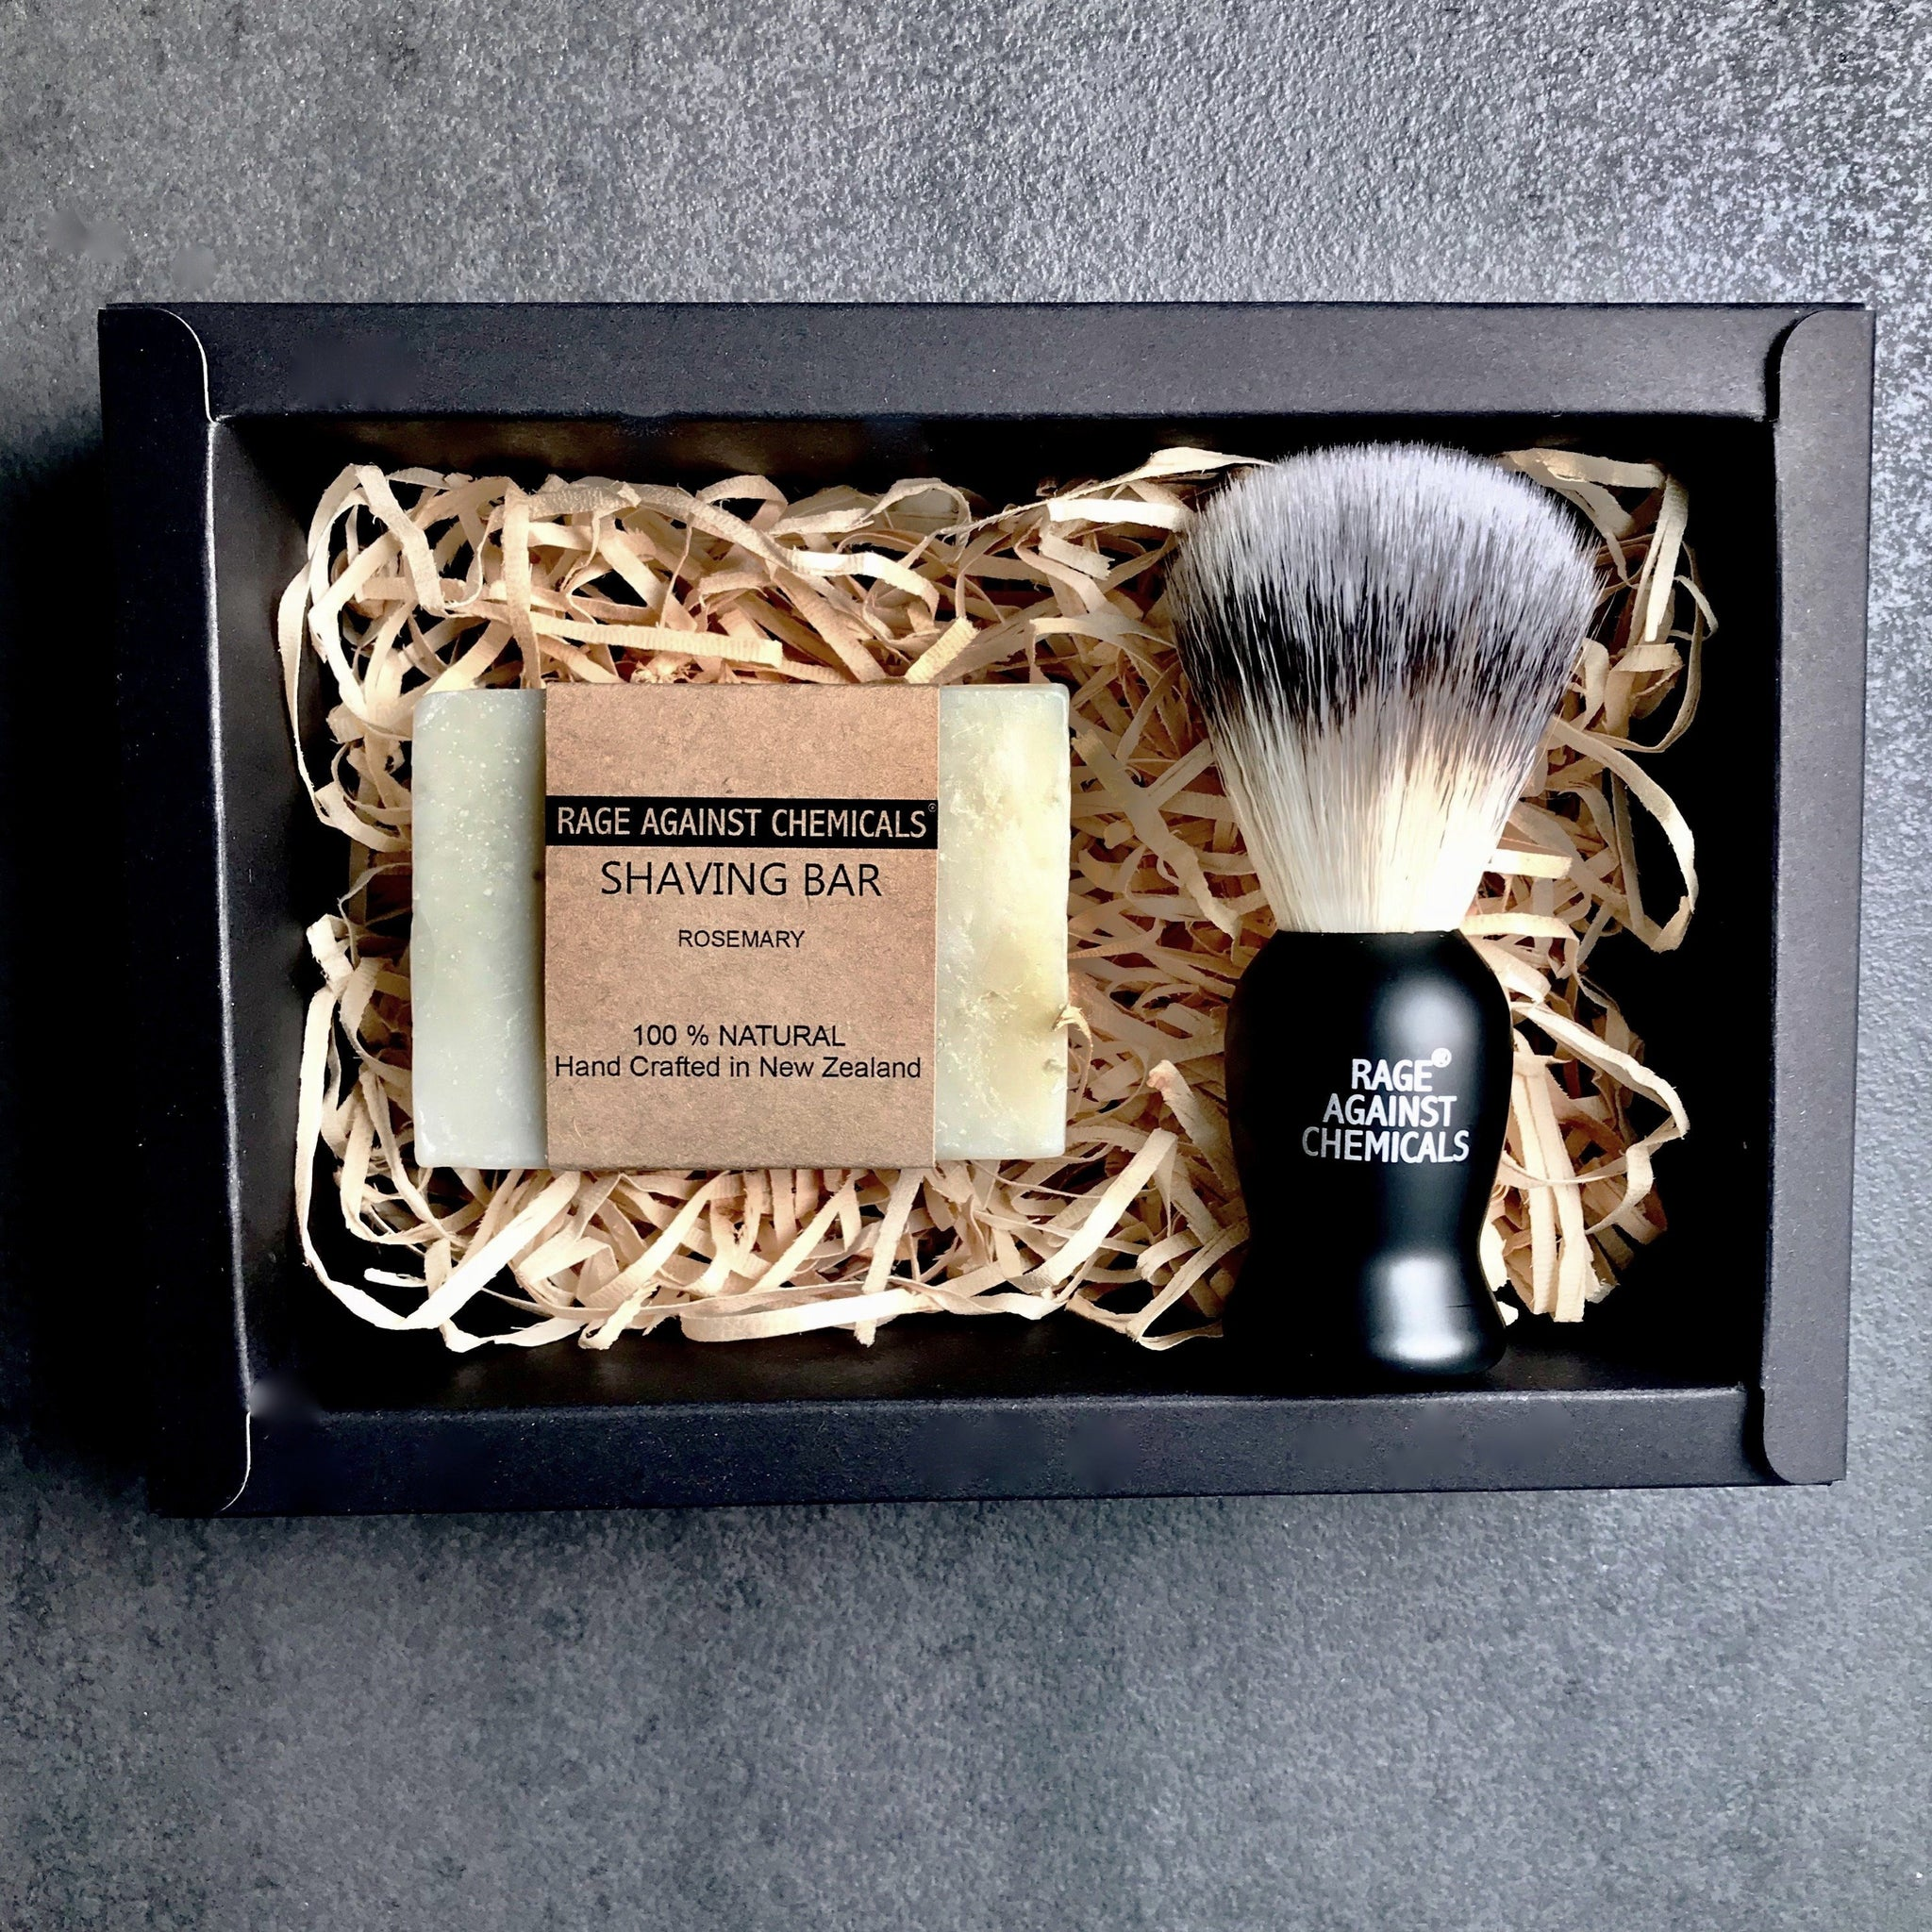 Shaving Brush & Bar Gift Set  - Rage Against Chemicals - Certified Organic Skincare